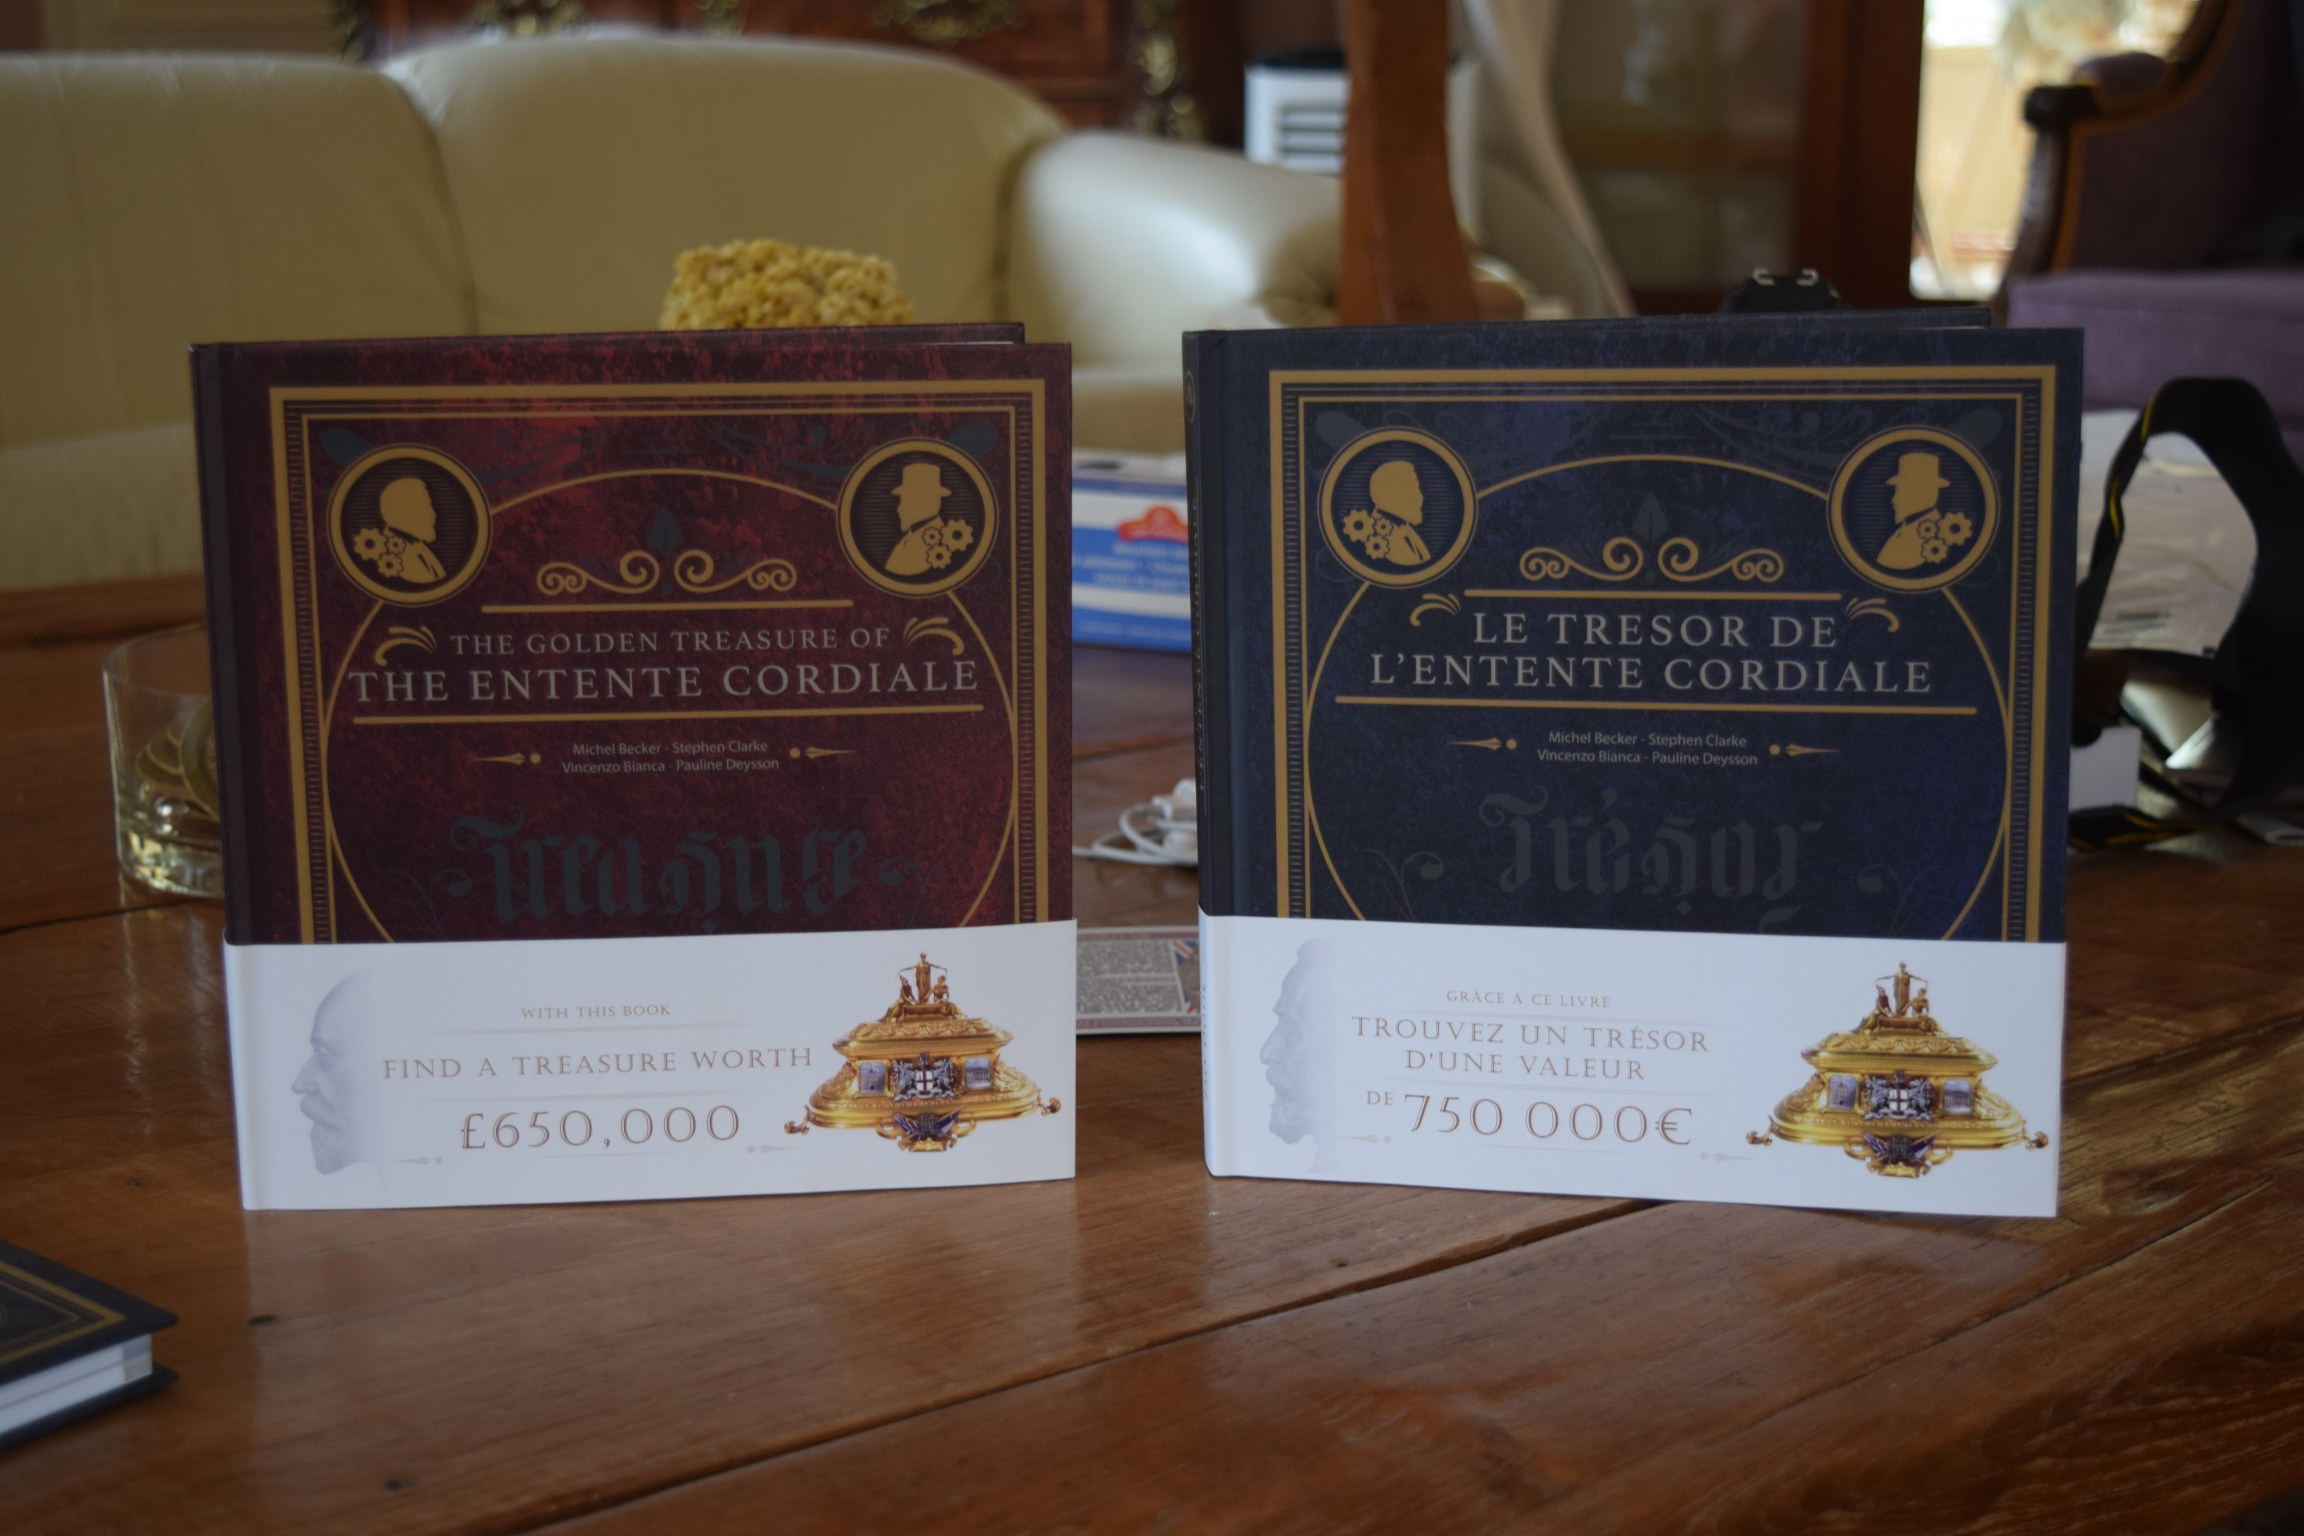 """Two books about the """"The Golden Treasure of the Entente Cordiale"""" needed to complete the treasure hunt."""